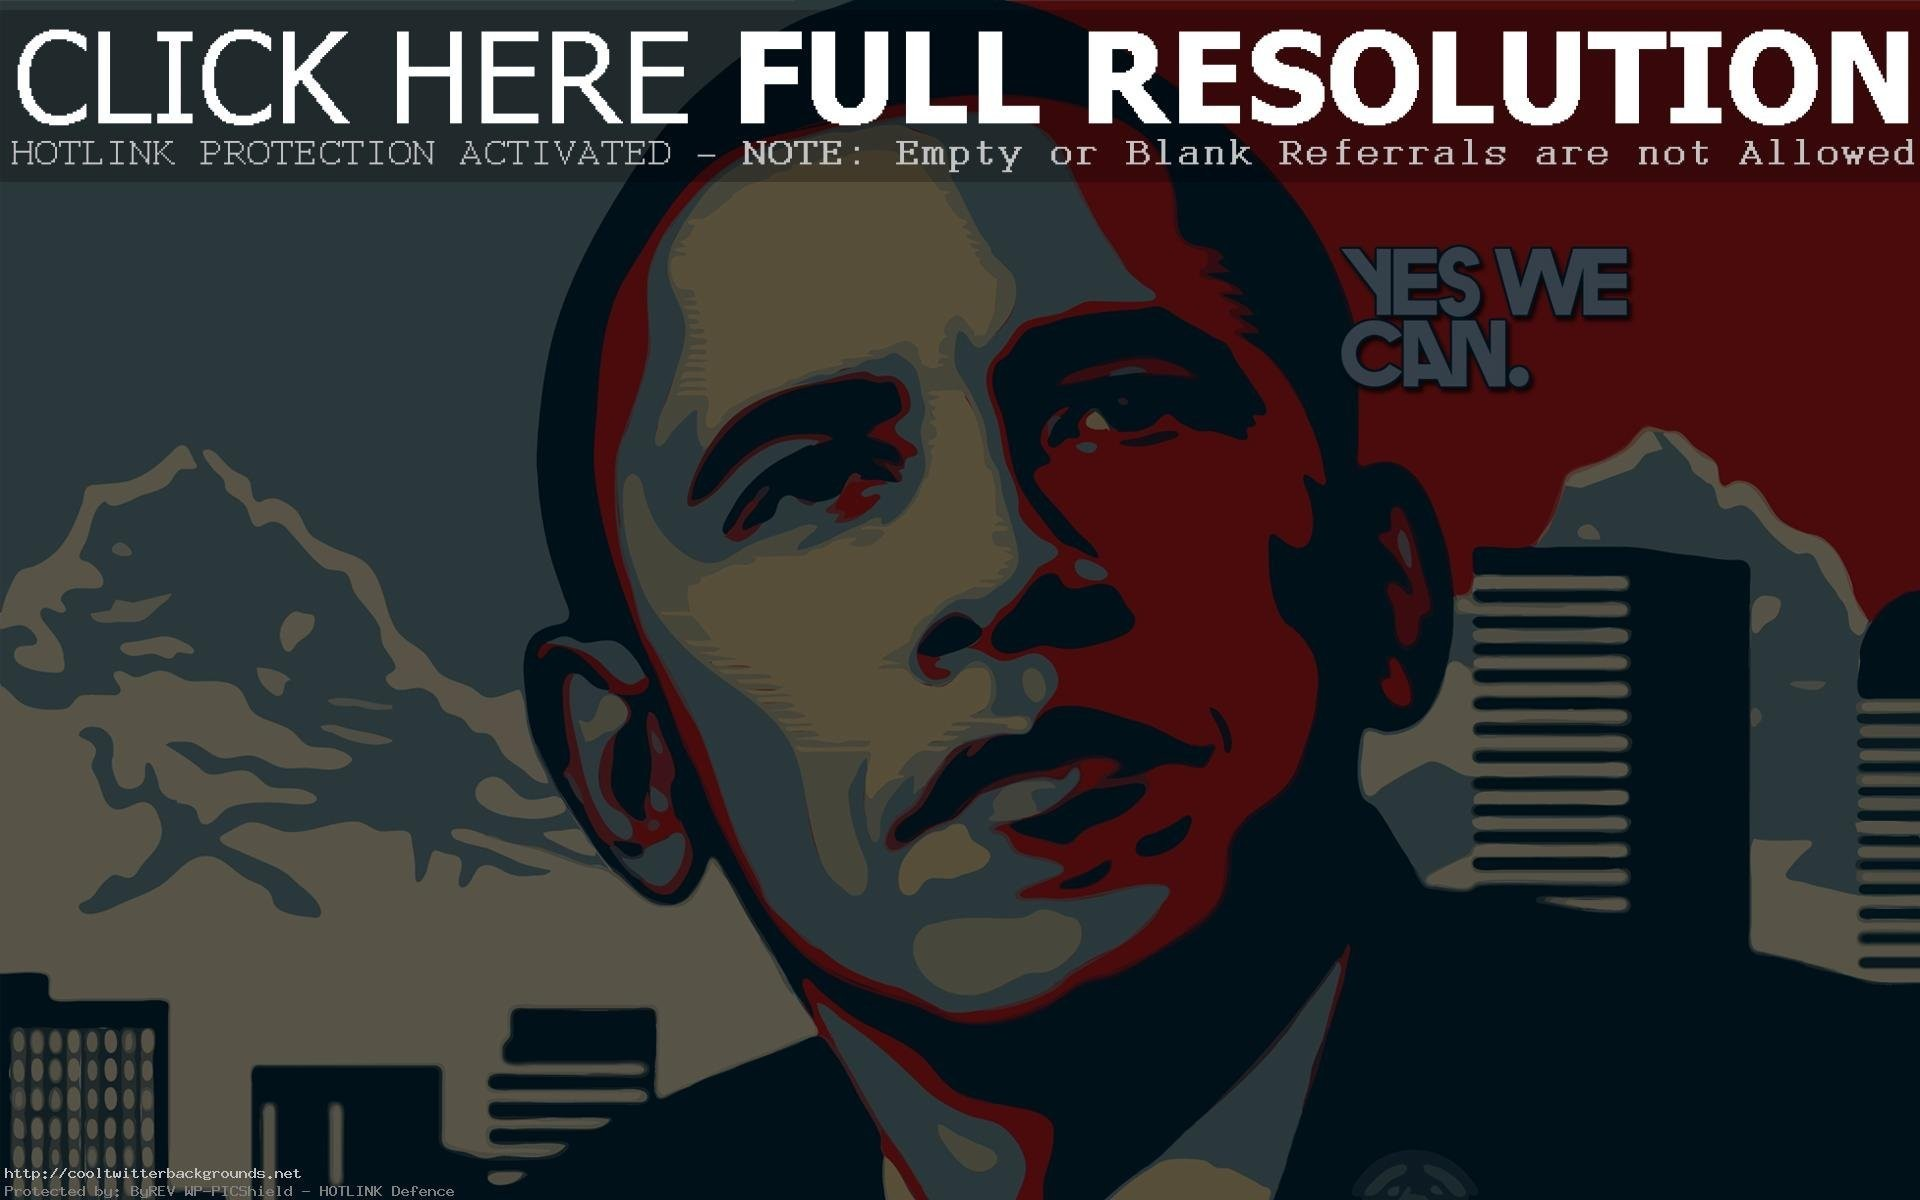 1920x1200 1920x1080 Polskisport | Pictures of Funny Barack Obama Cartoon Barrack Obama  Wallpaper .